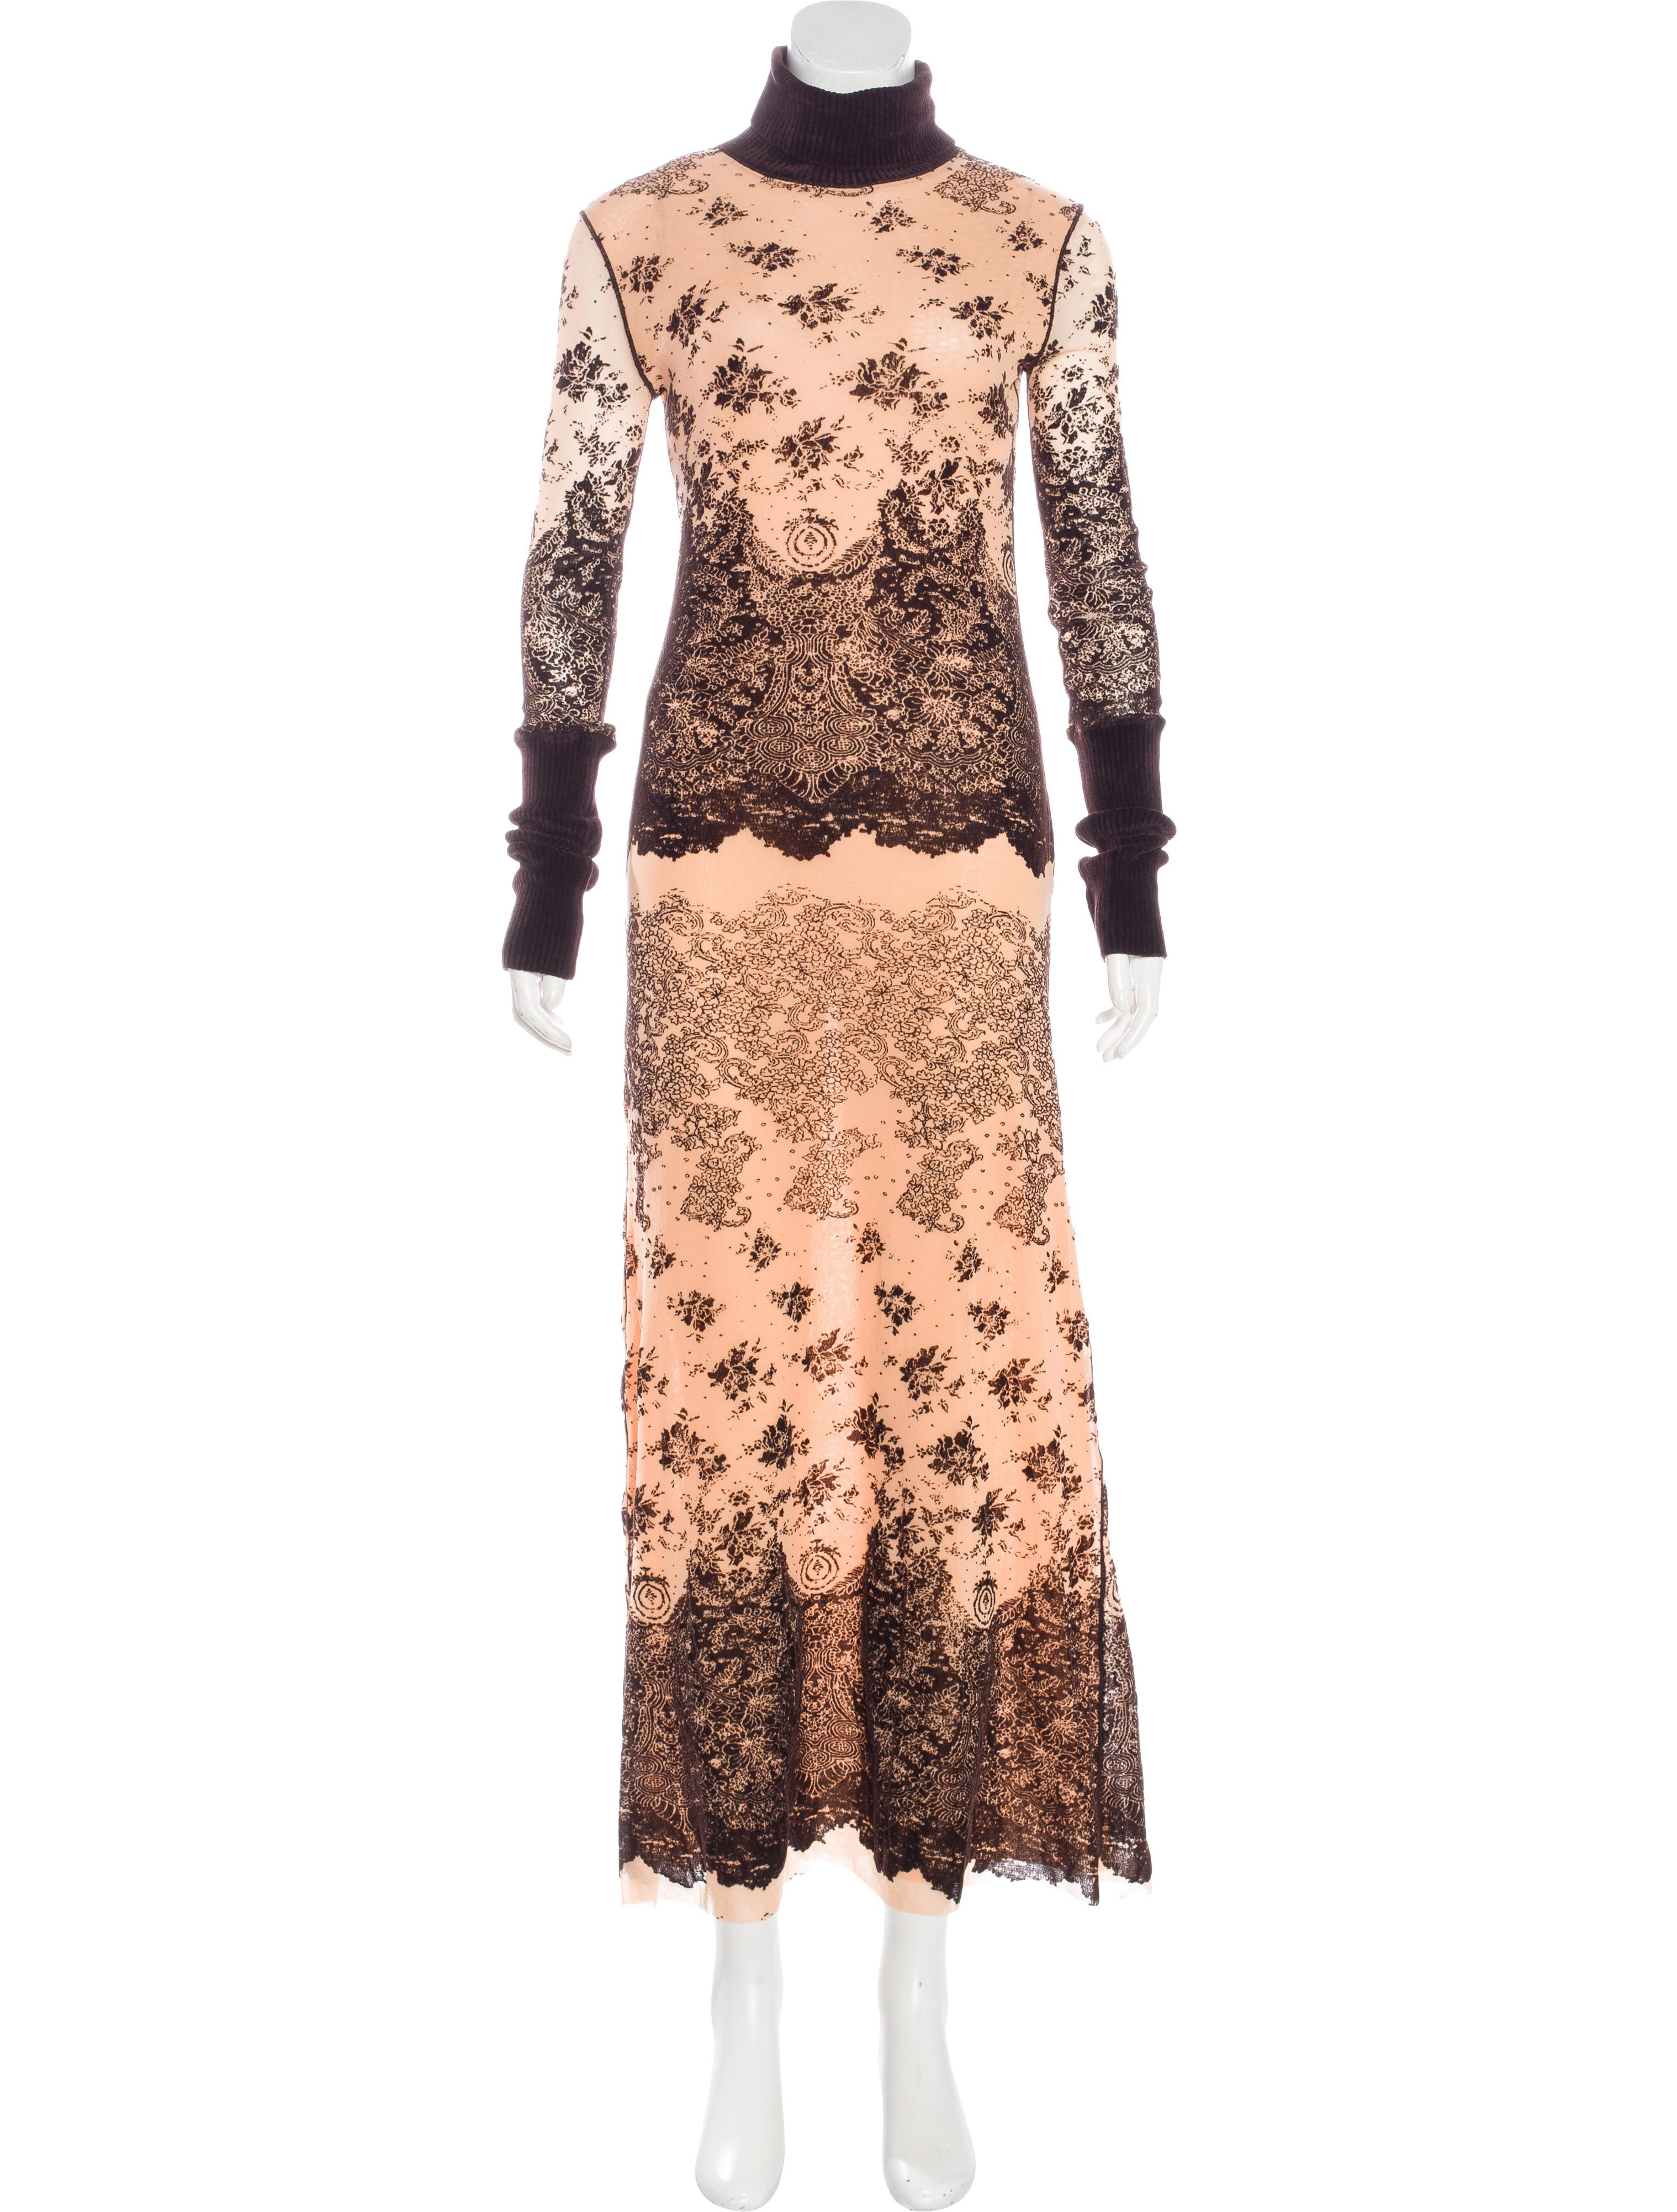 Jean paul gaultier mesh maxi dress clothing jea26627 for Jean paul gaultier clothing